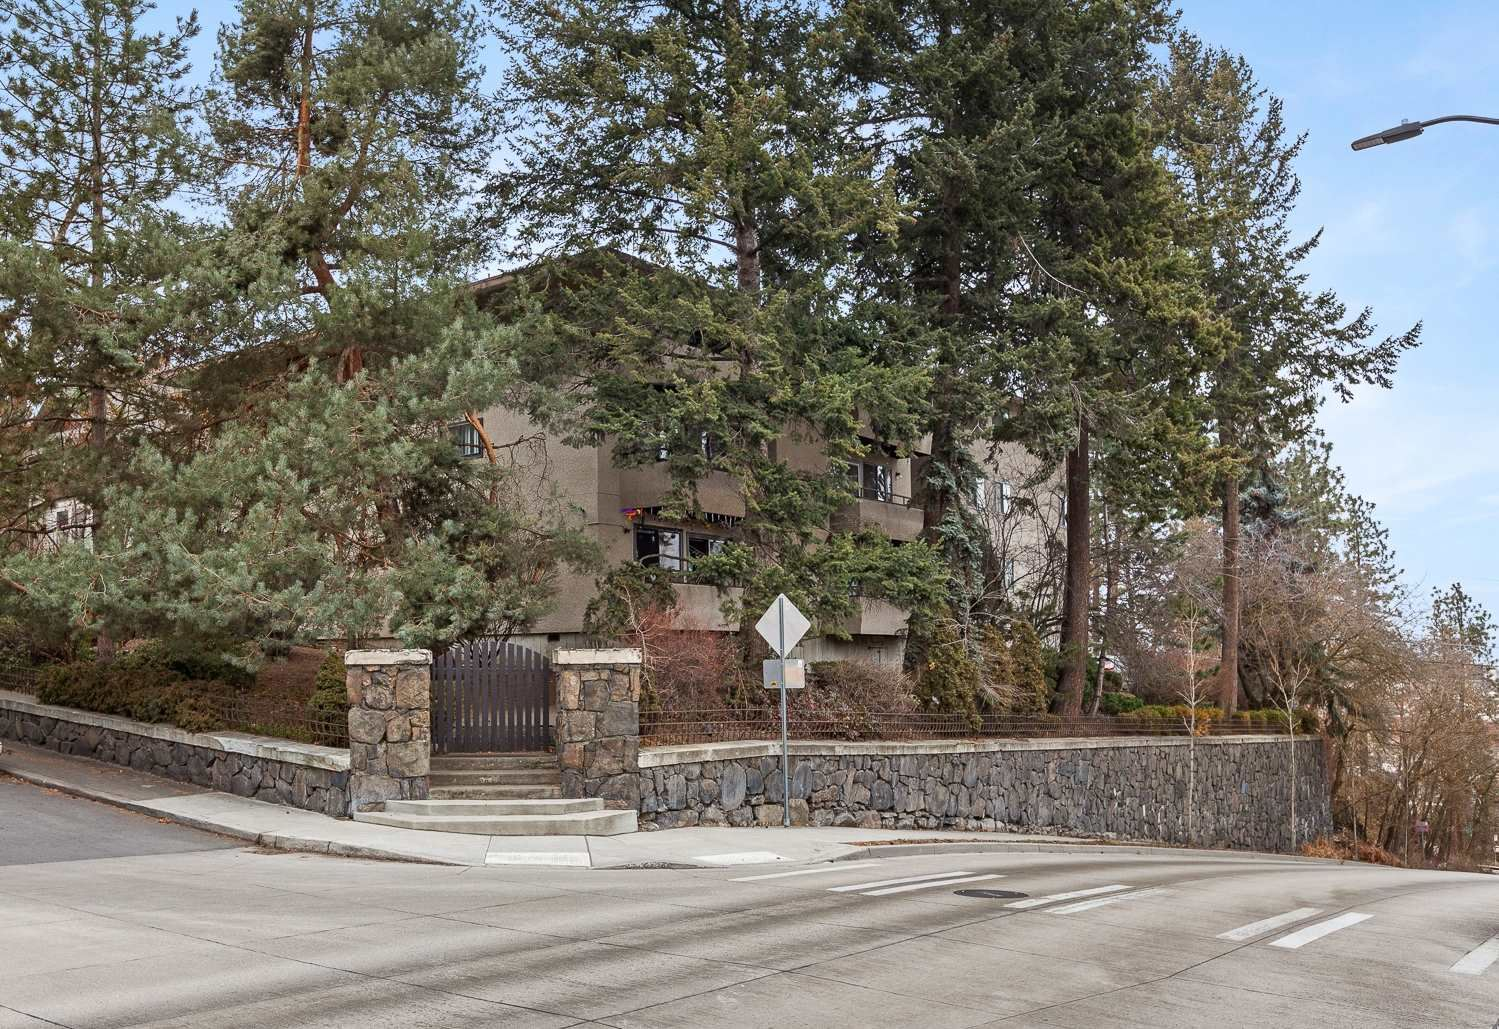 1002 W 7th Ave #301, Spokane, WA 99204 - #: 202111895